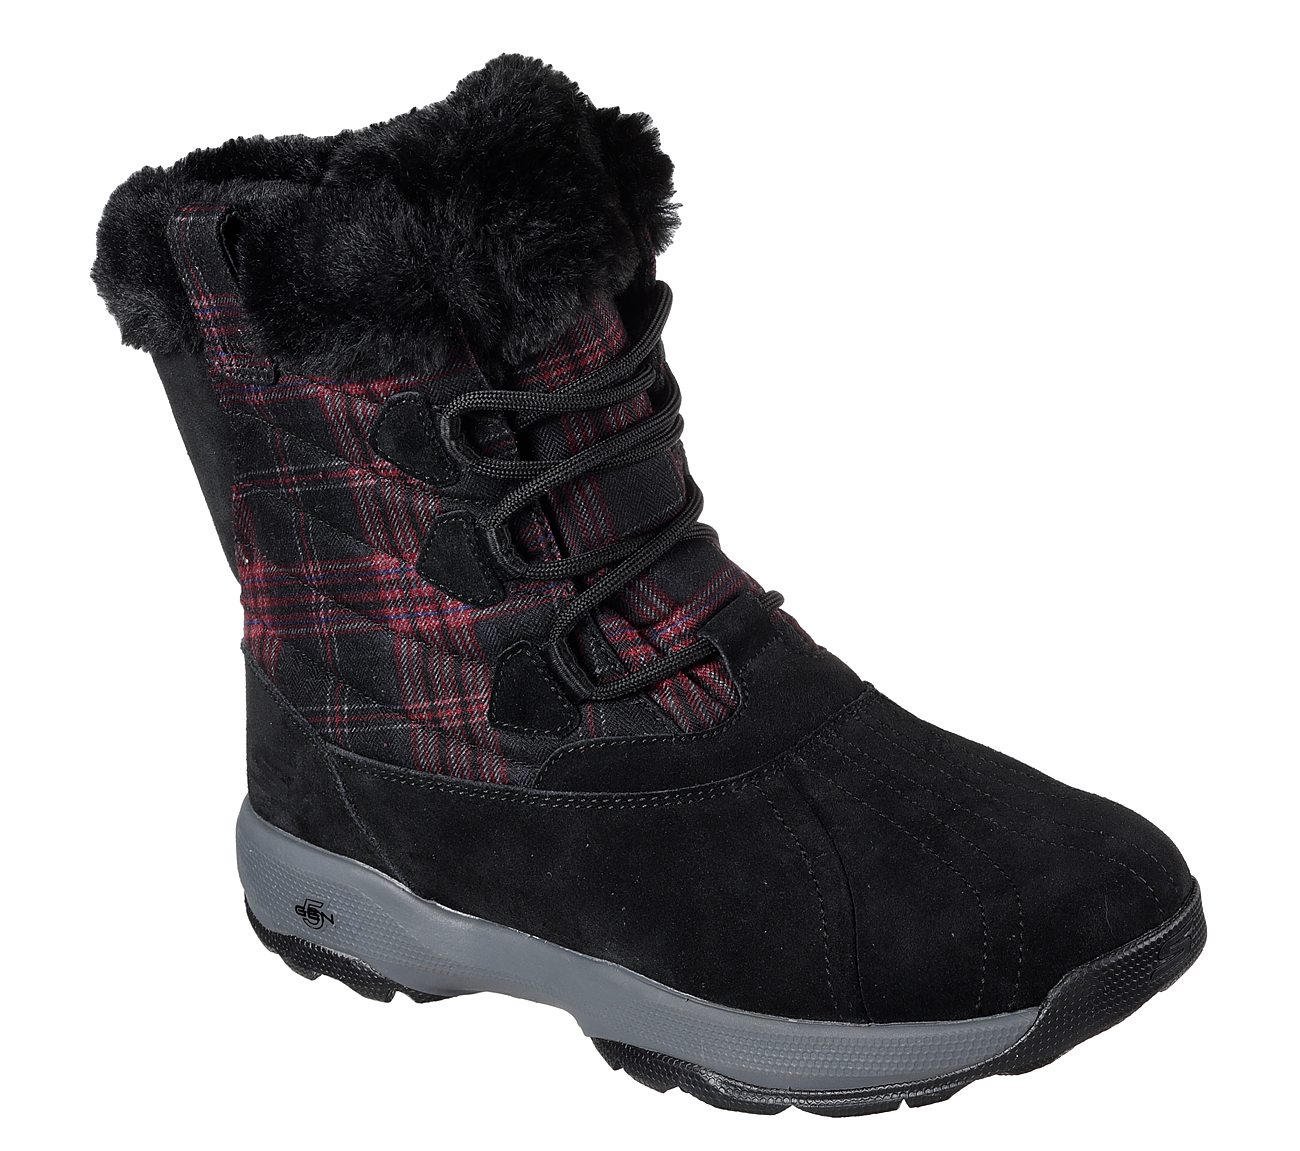 Women's Skechers GOwalk Outdoors - Crest new styles cheap price find great for sale get authentic online best seller oBS14Vxv